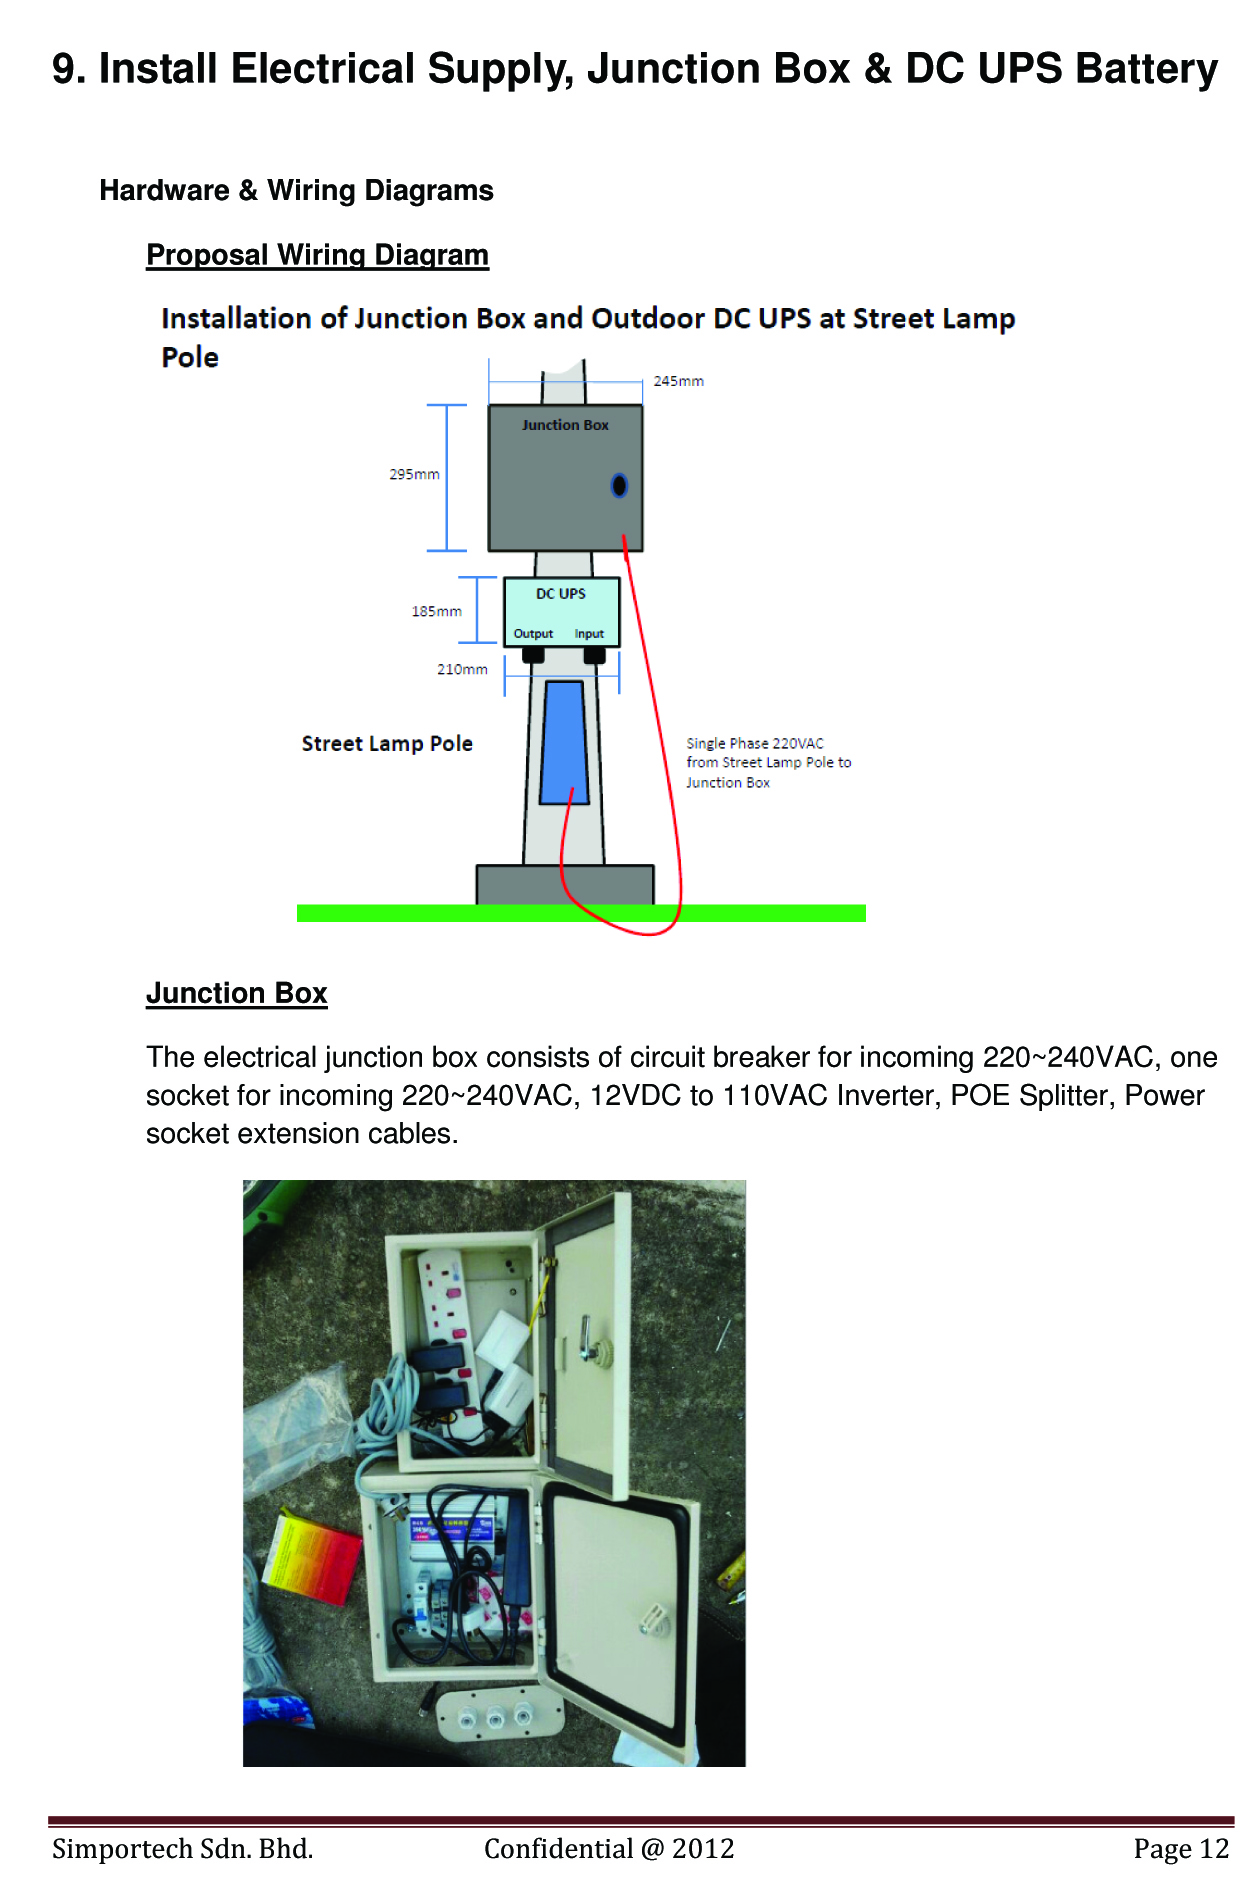 Outdoor Dc Ups Power System Case Studies Light Bulb Wiring Diagram Set Up Iop Ussp 1247 10b 594 Wh 464ah 128v On18hrs Street Lamps Supply For Wireless Ap Ir Ip Cam2 12vdc To 110vac